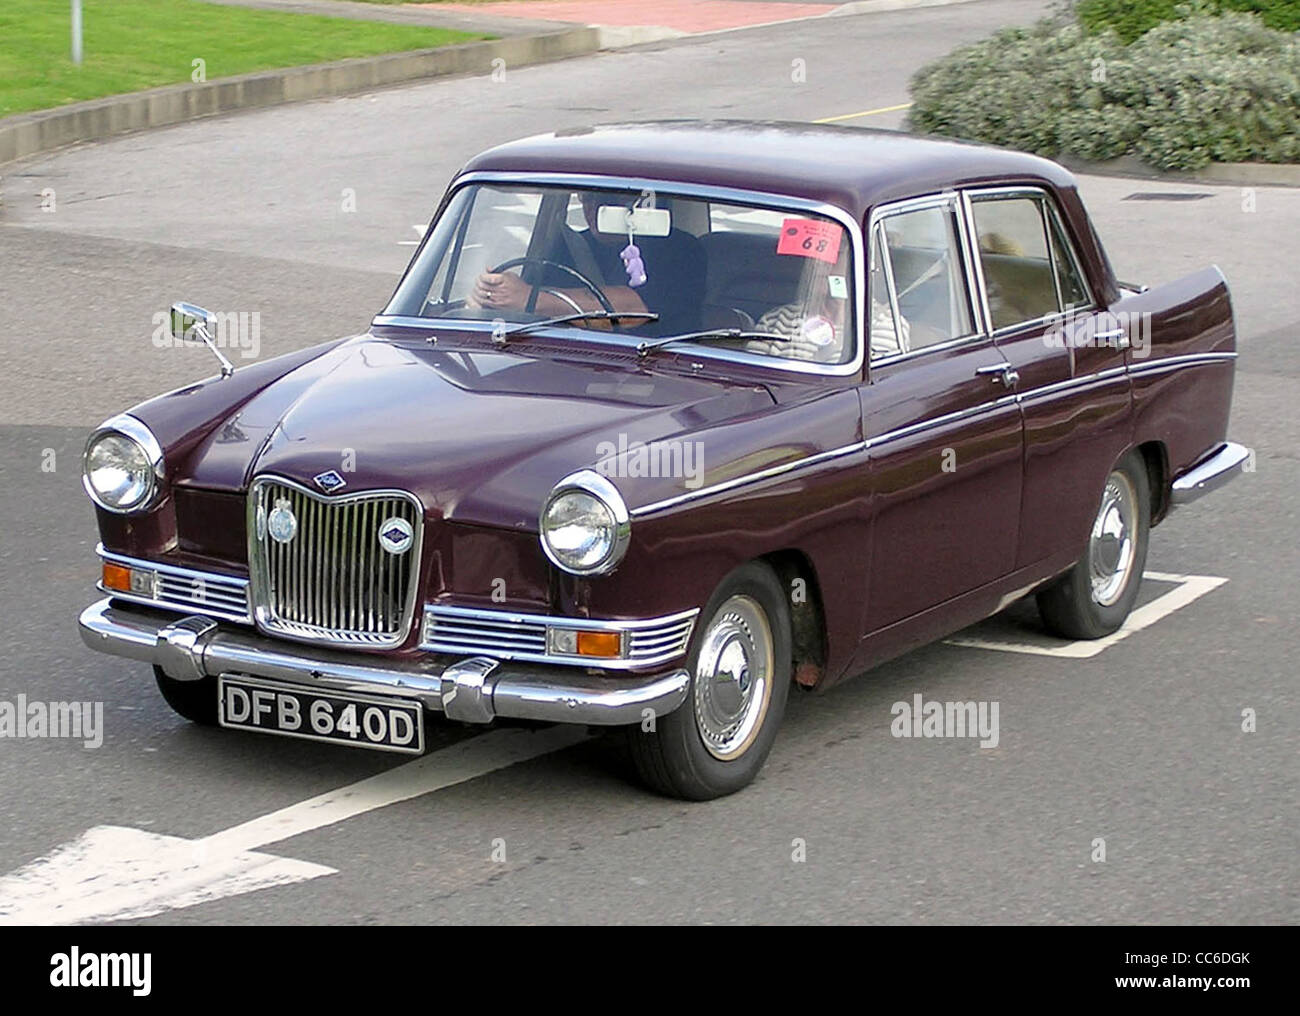 1965 Riley 4/72 at the Great Western Road Run rally at Aust Services, Aust, Bristol, England. - Stock Image